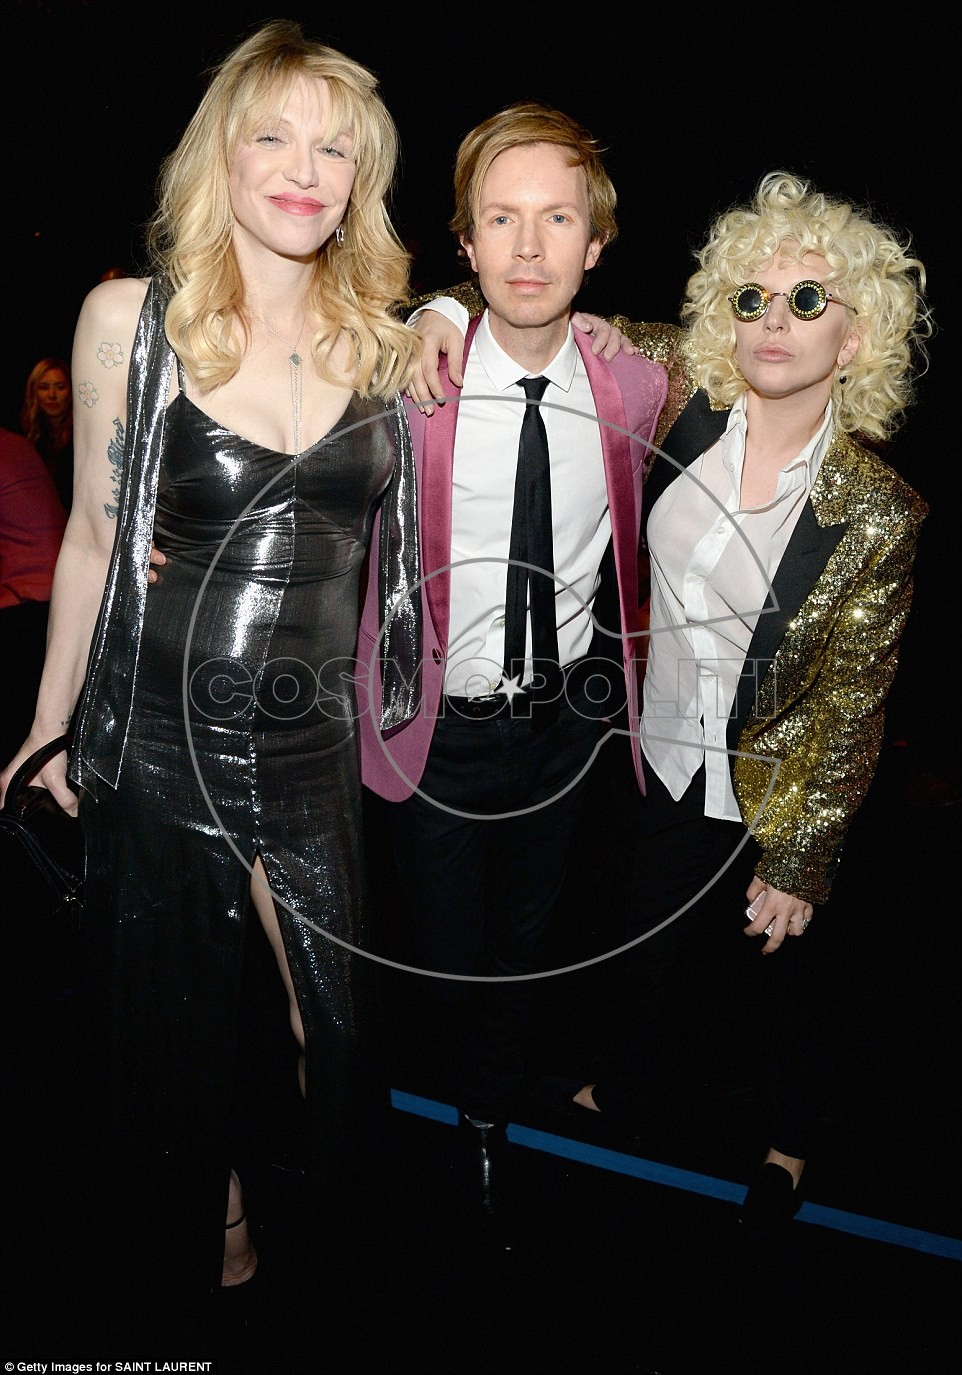 3113174E00000578-3441779-Fashionable_trio_Gaga_chatted_with_singer_Beck_and_rocker_Courtn-a-4_1455179227755